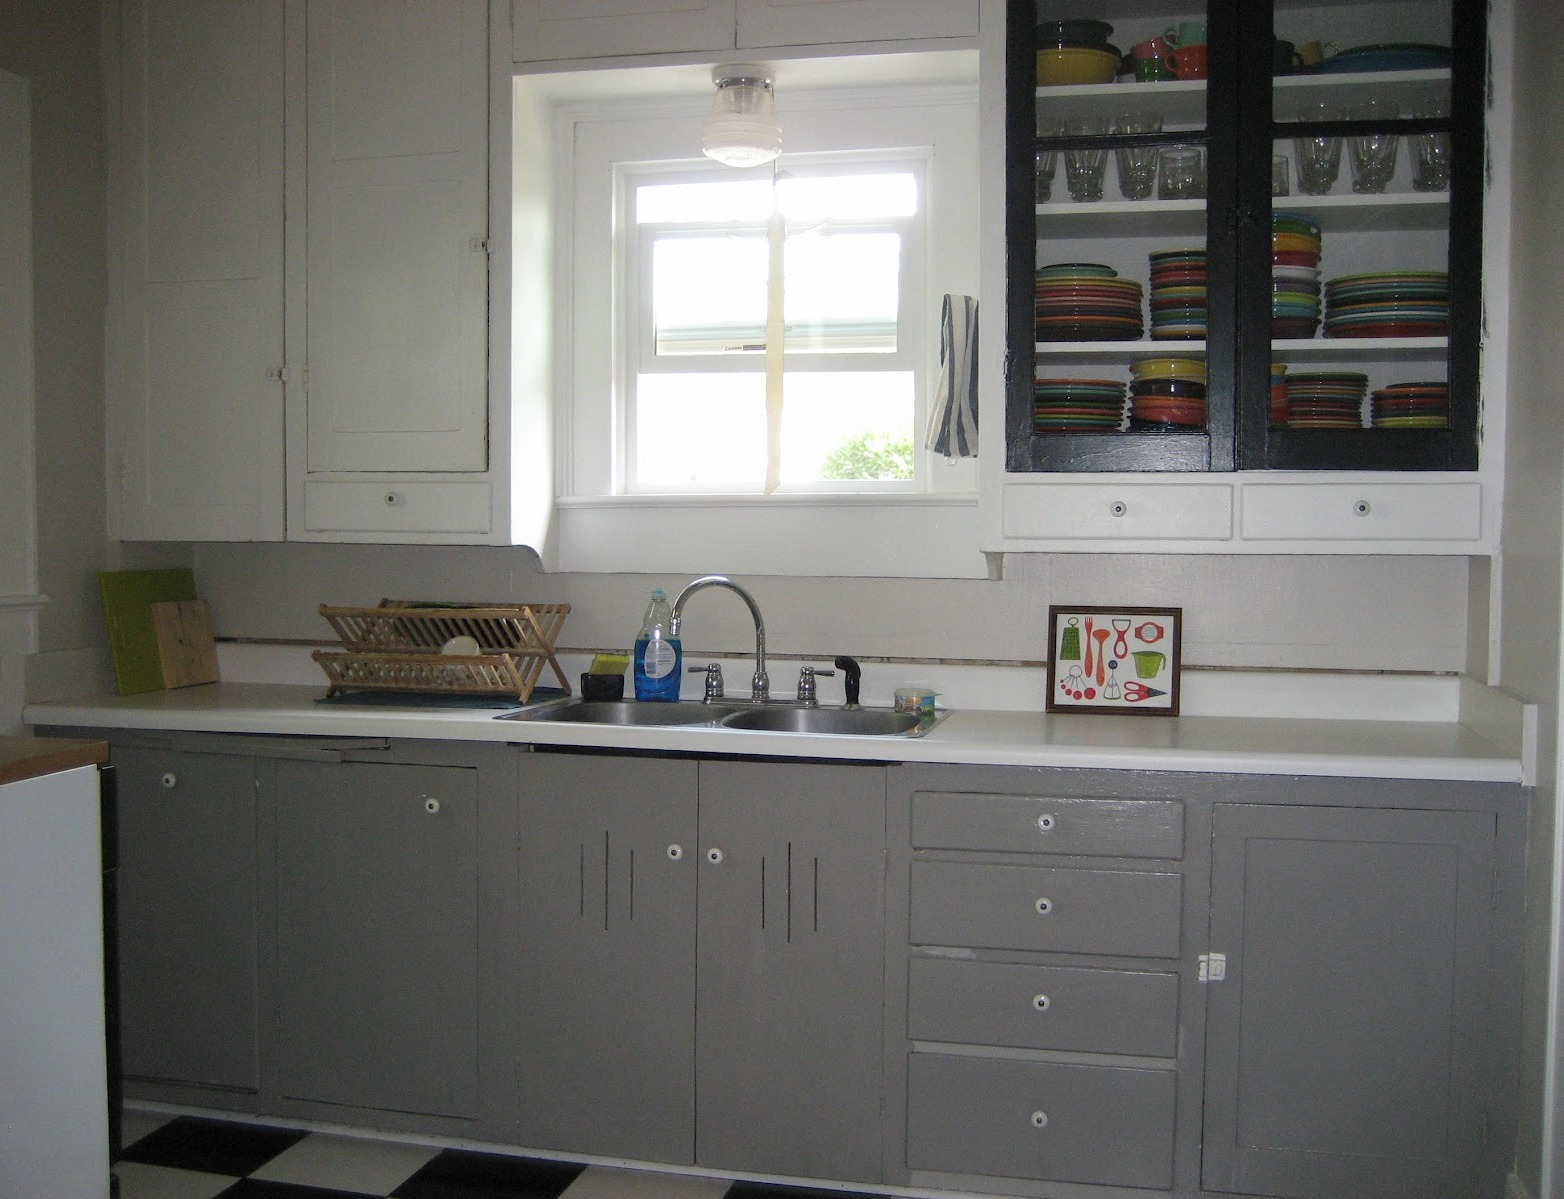 trendy-light-grey-kitchen-cabinets-ikea-at-grey-kitchen-cabinets